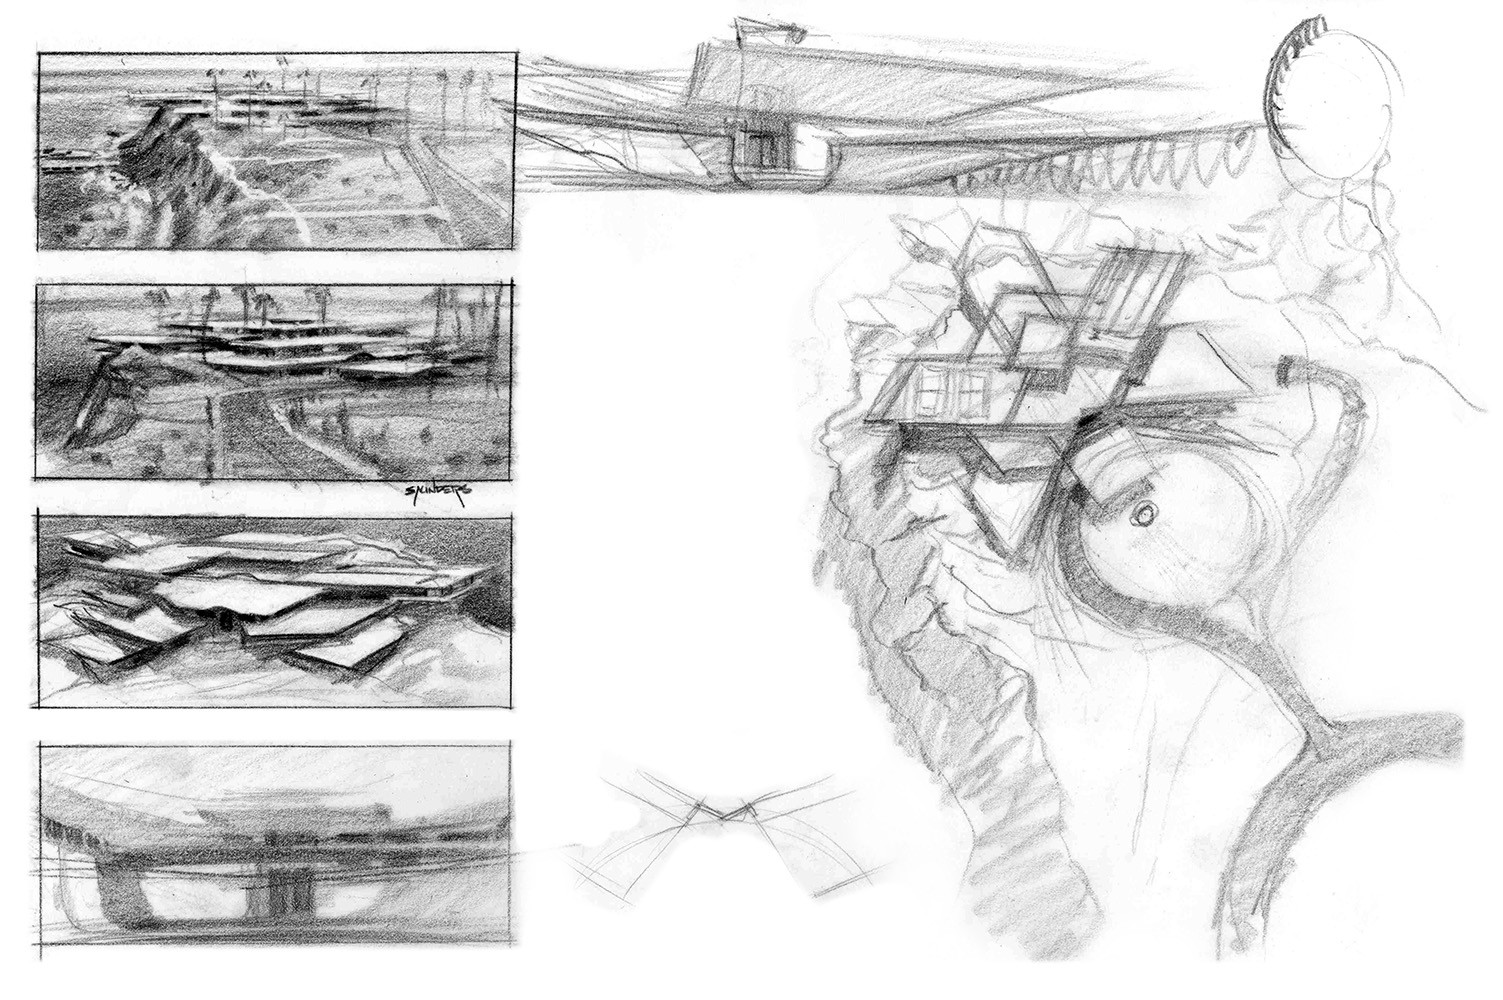 More early pencil exploration of terraced rectilinear structures.